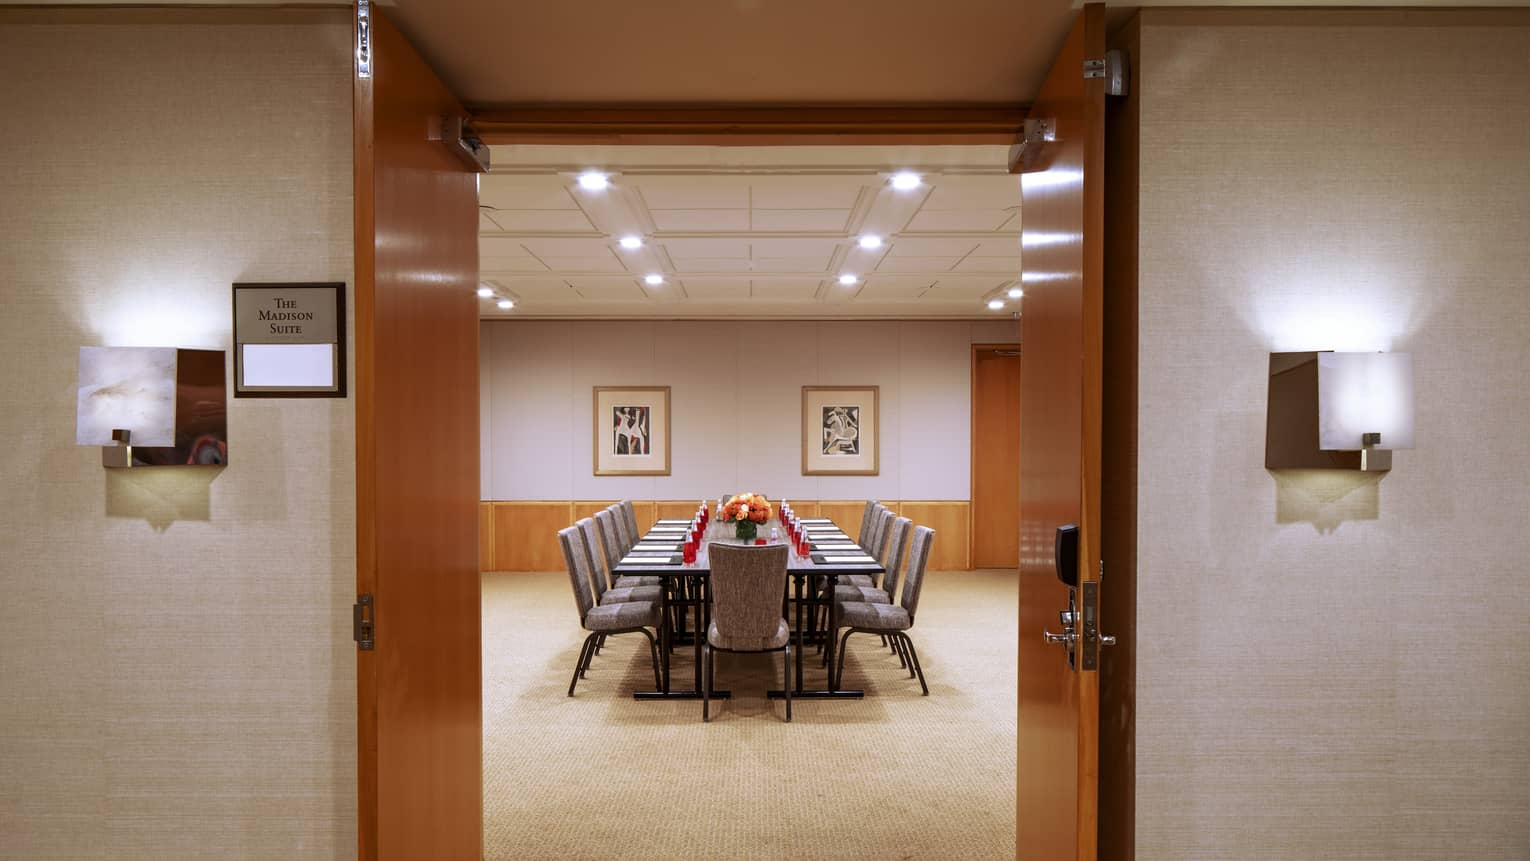 Two dark wooden doors are opened to reveal a function room with a long rectangular boardroom table with an orange floral arrangement in the center